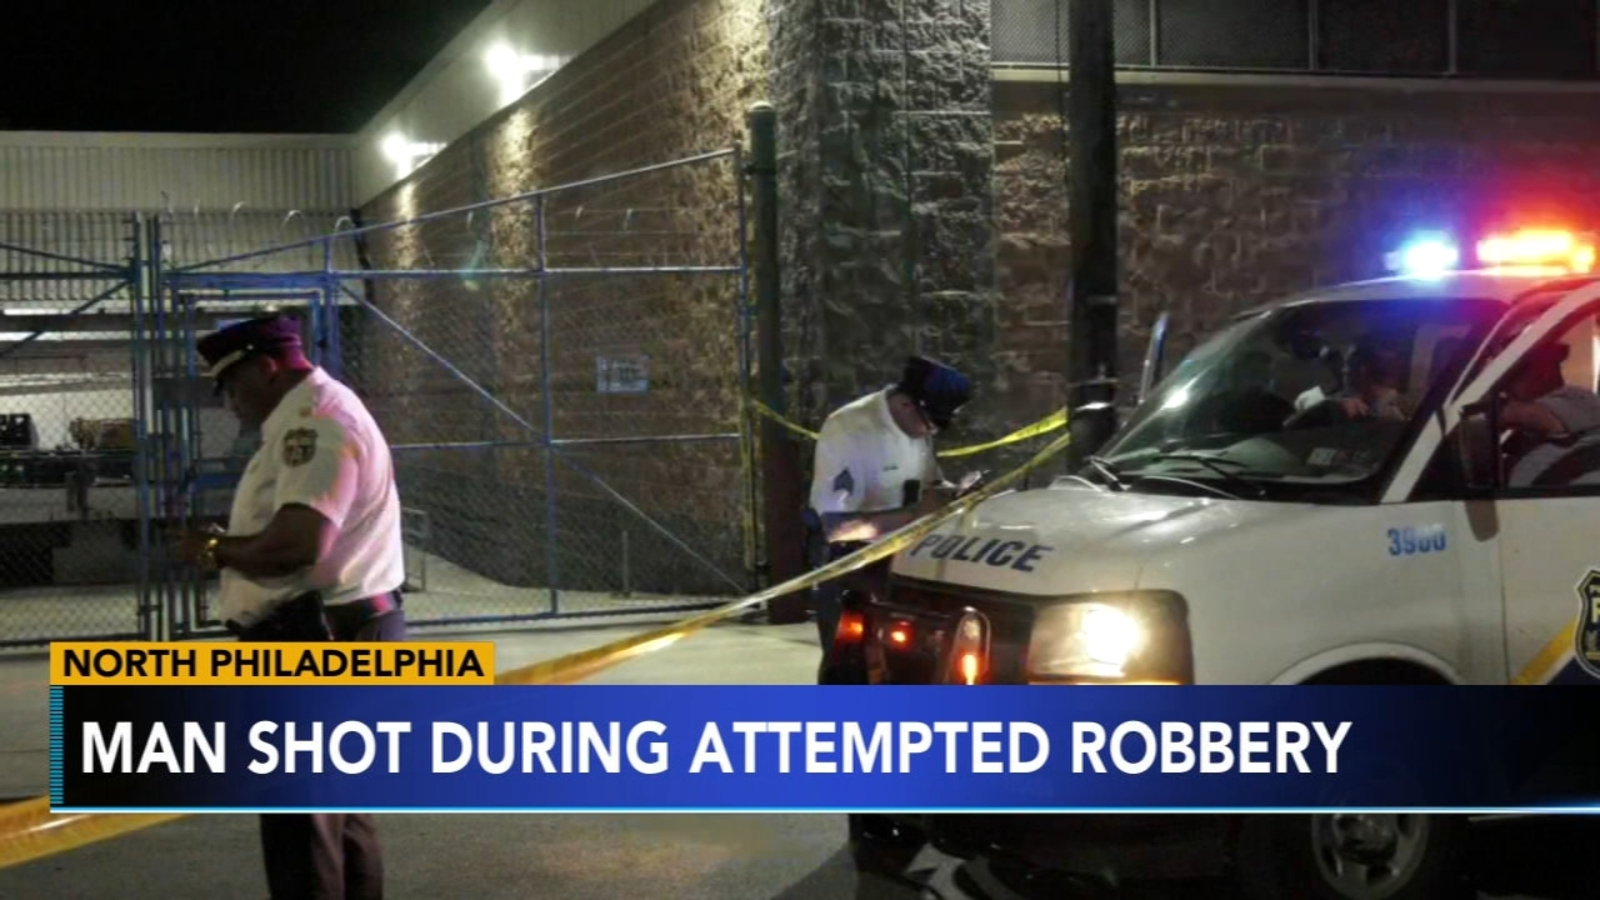 Man shot in attempted robbery in North Philadelphia